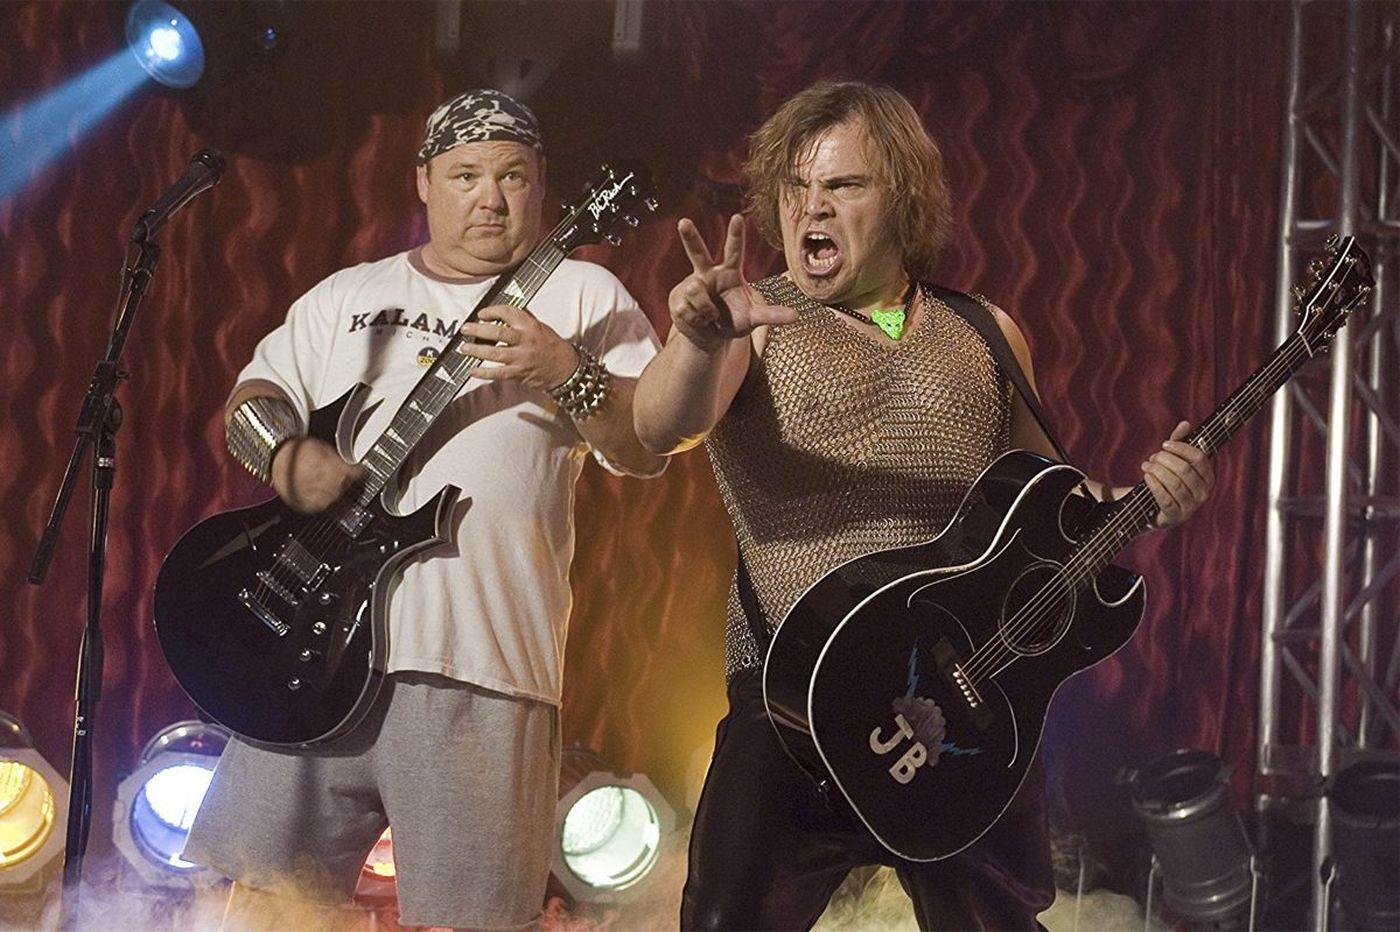 Jack Black's Tenacious D coming to Philly's Fillmore this fall